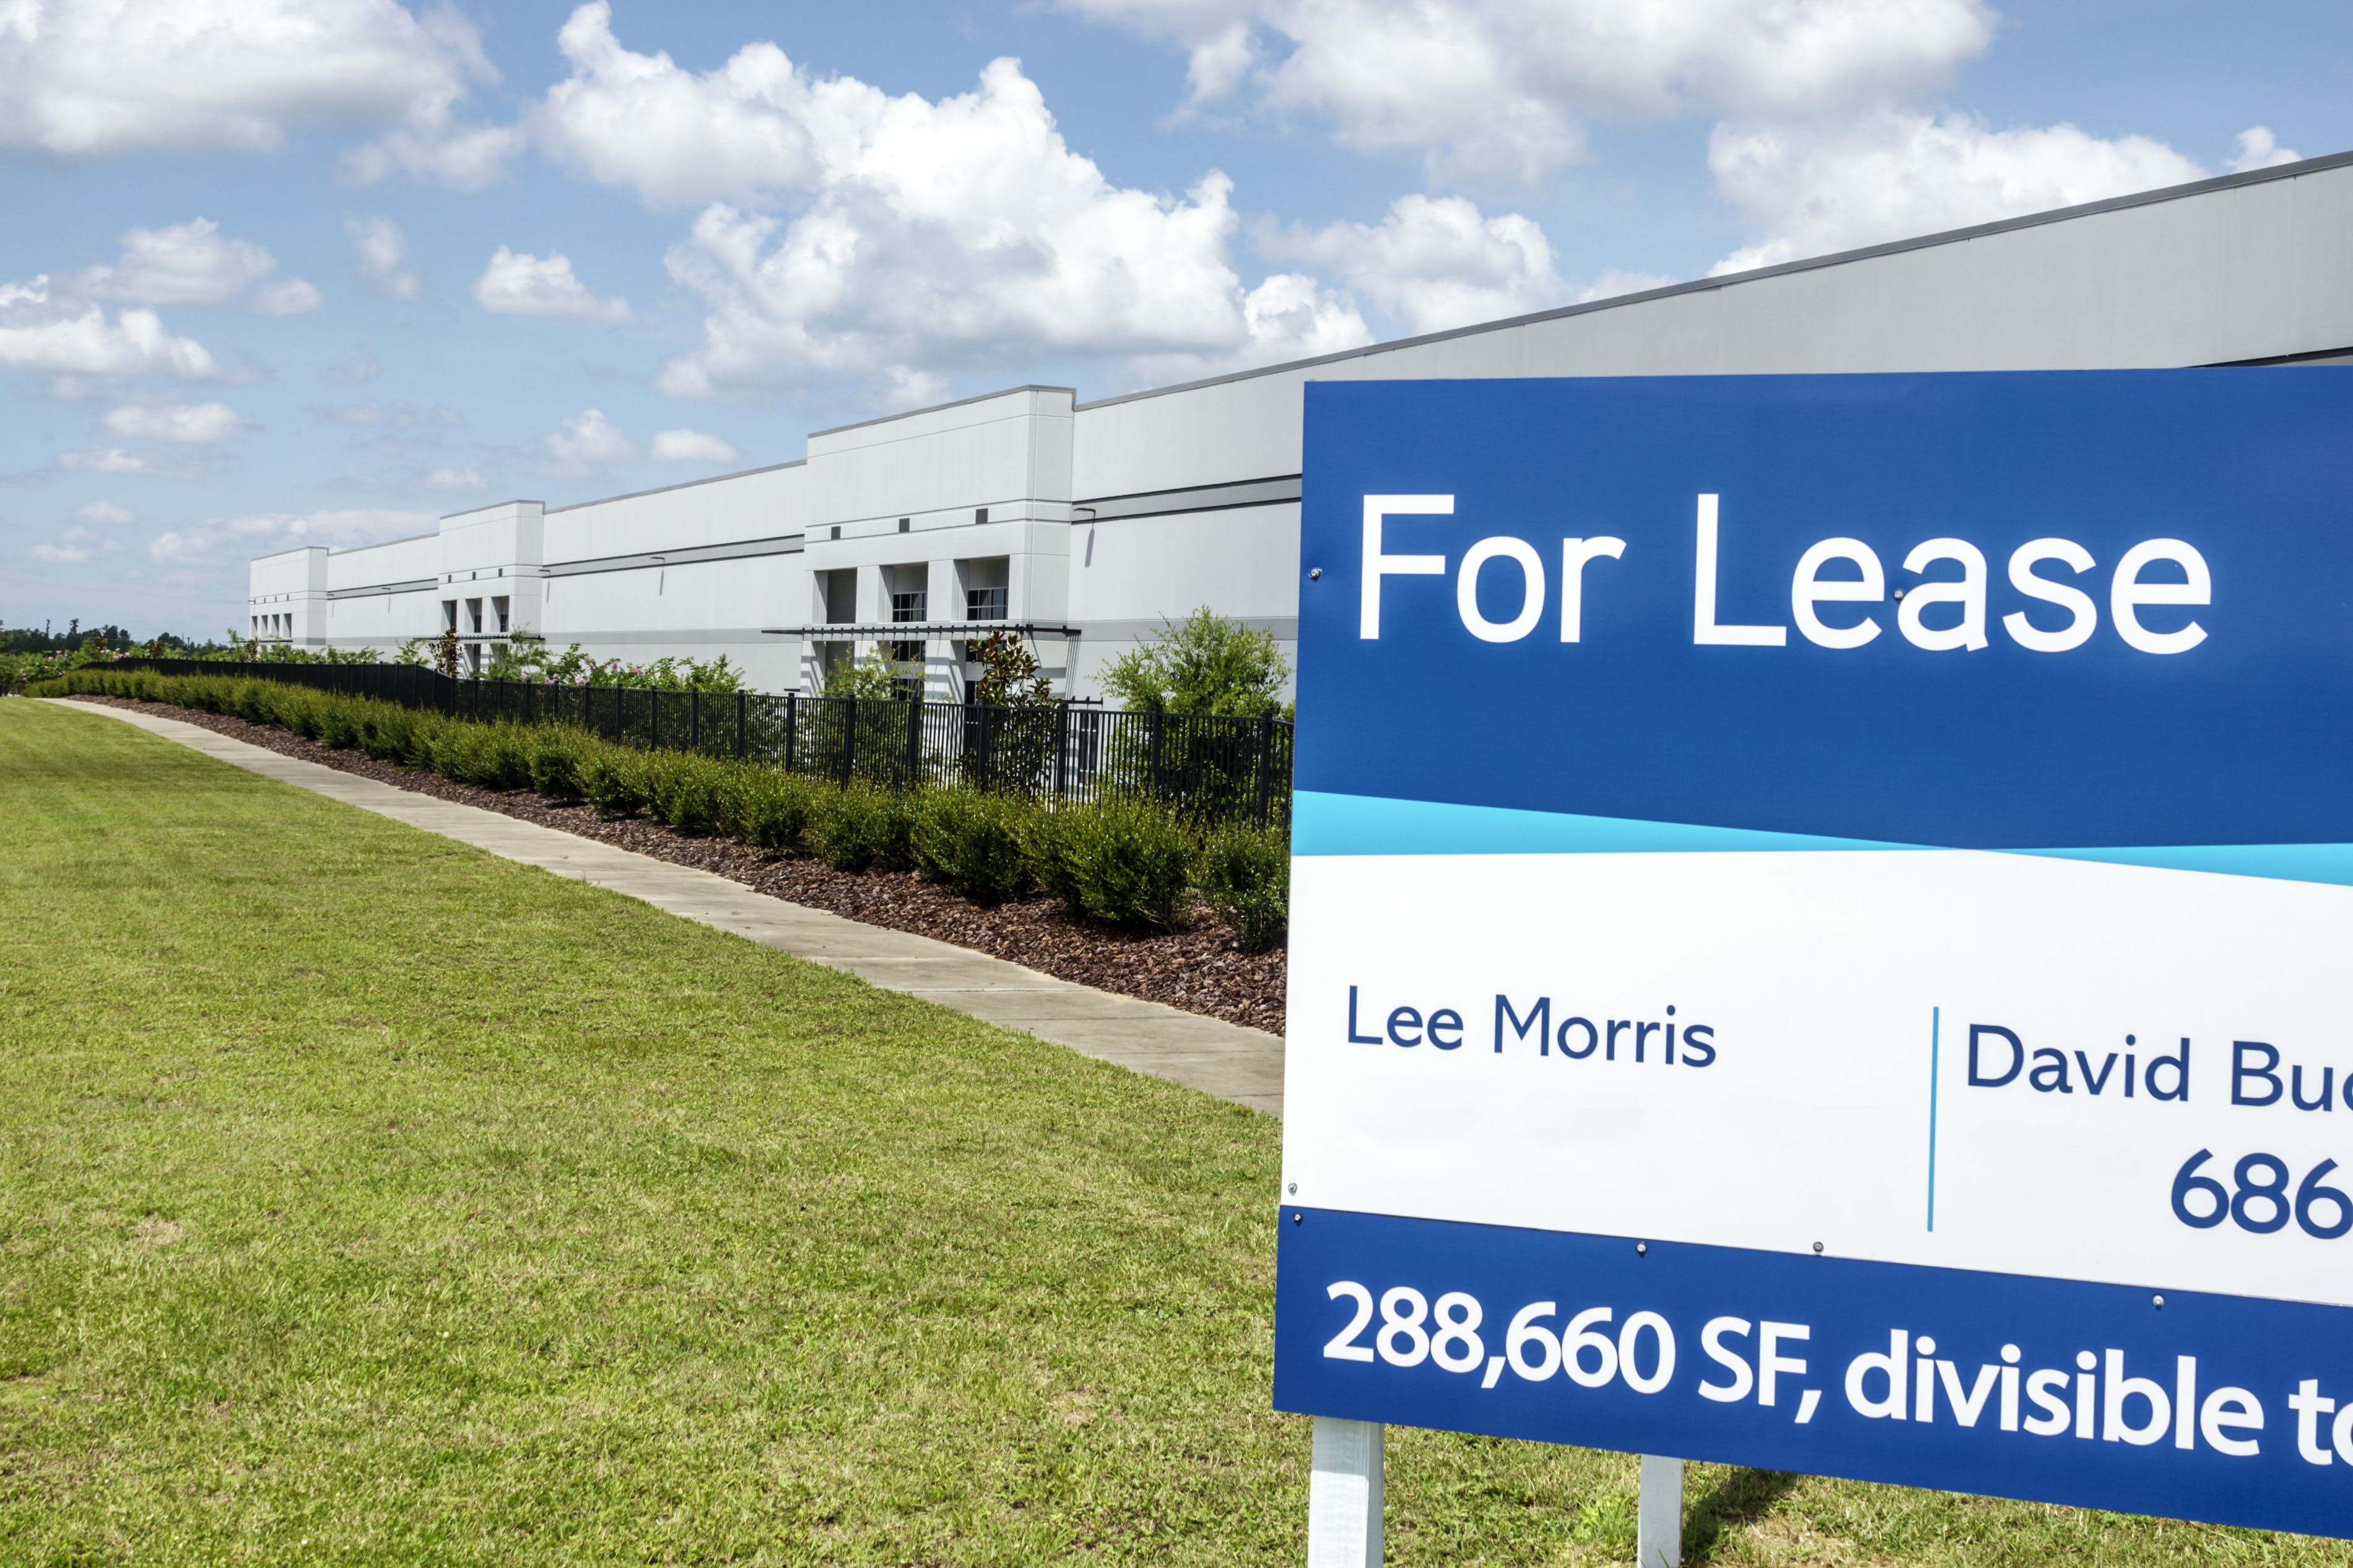 Warehouse leasing plummets – because there's so little new space to lease